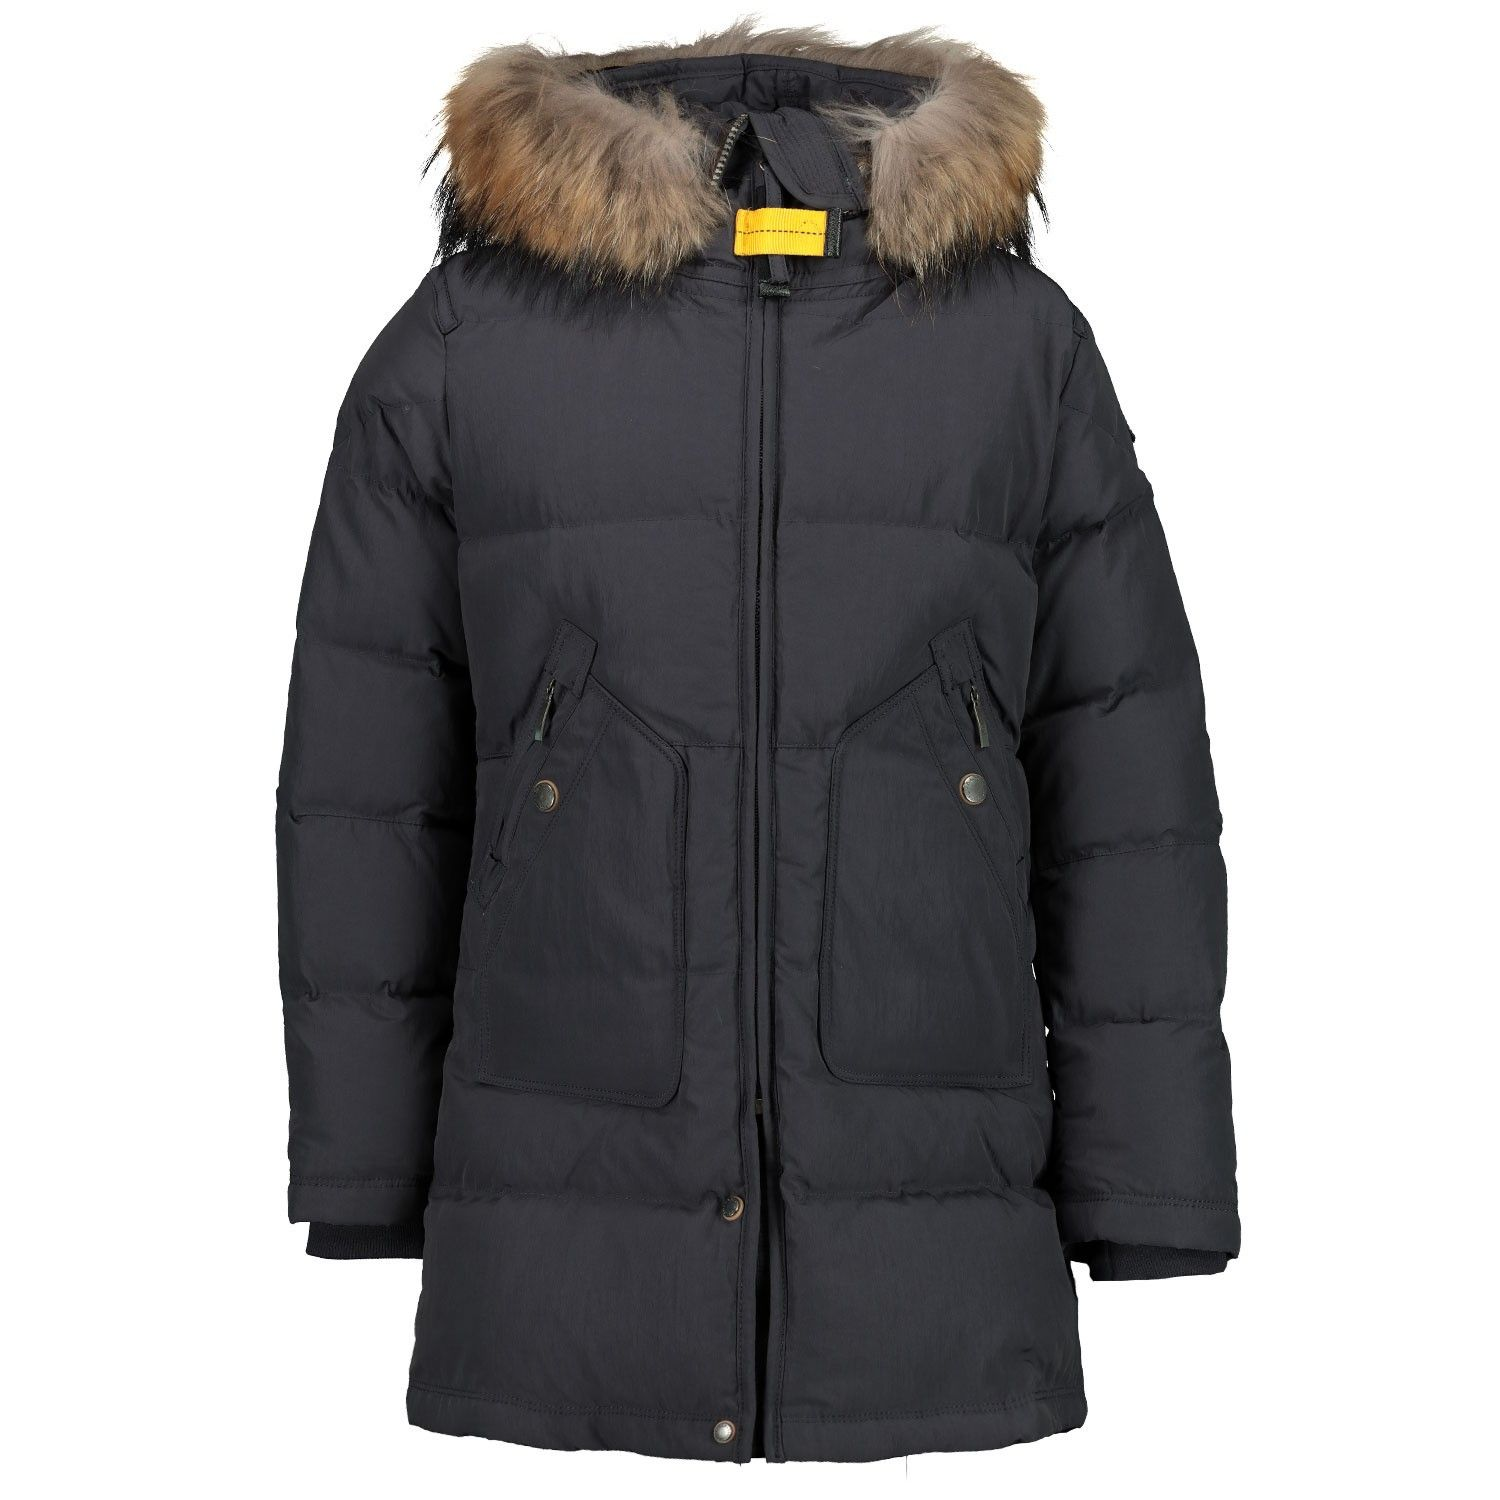 Bild von Parajumpers HF83 Kindermantel Anthrazit